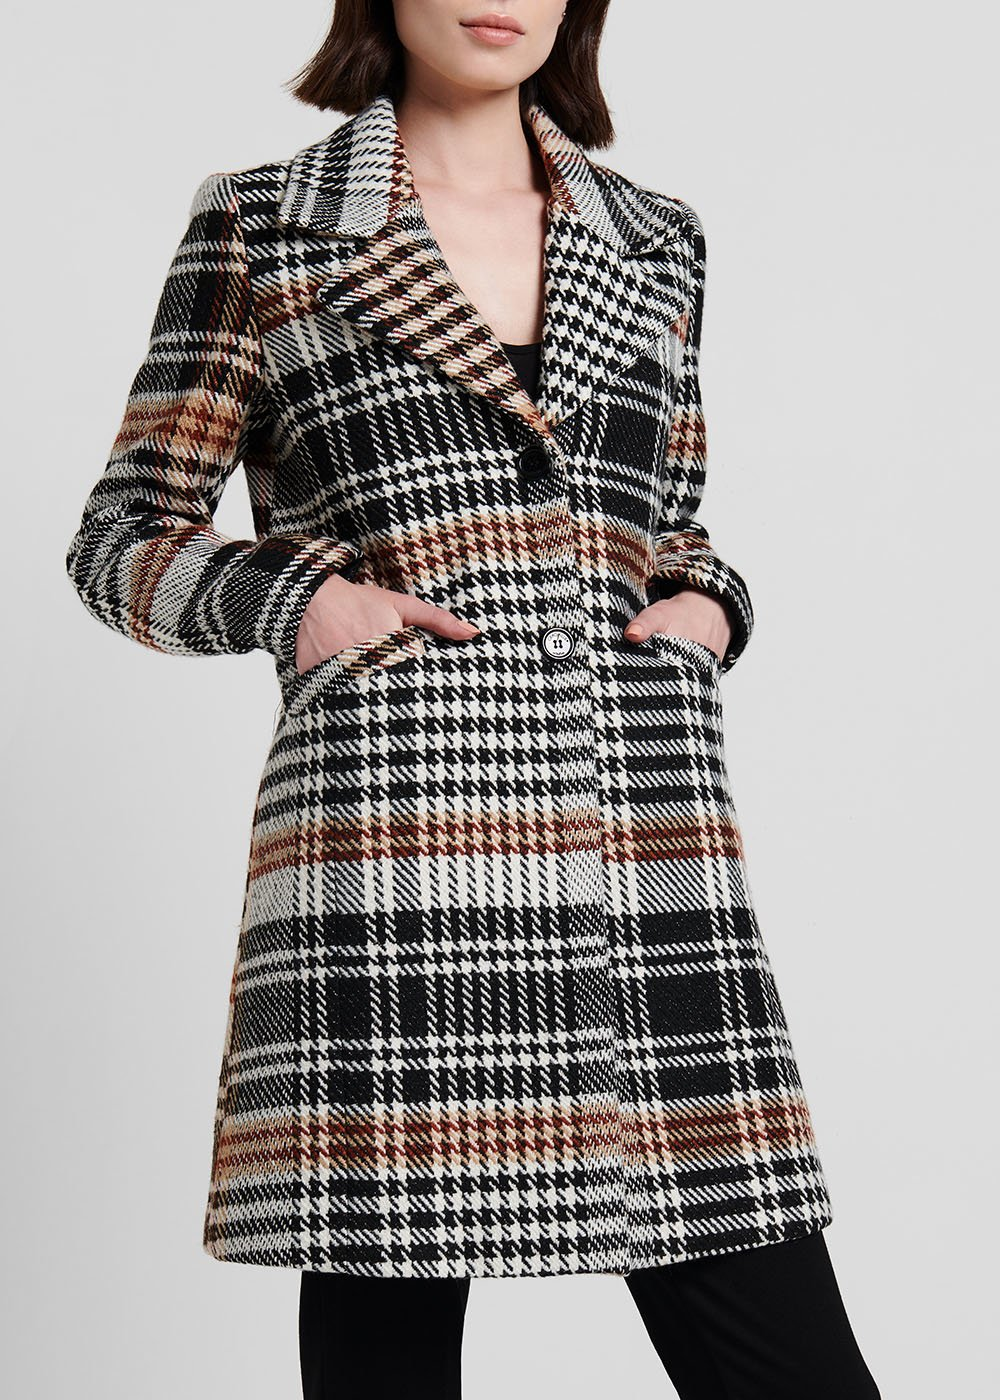 Cappotto stampa check con doppio bottone - Black / White Fantasia - Donna